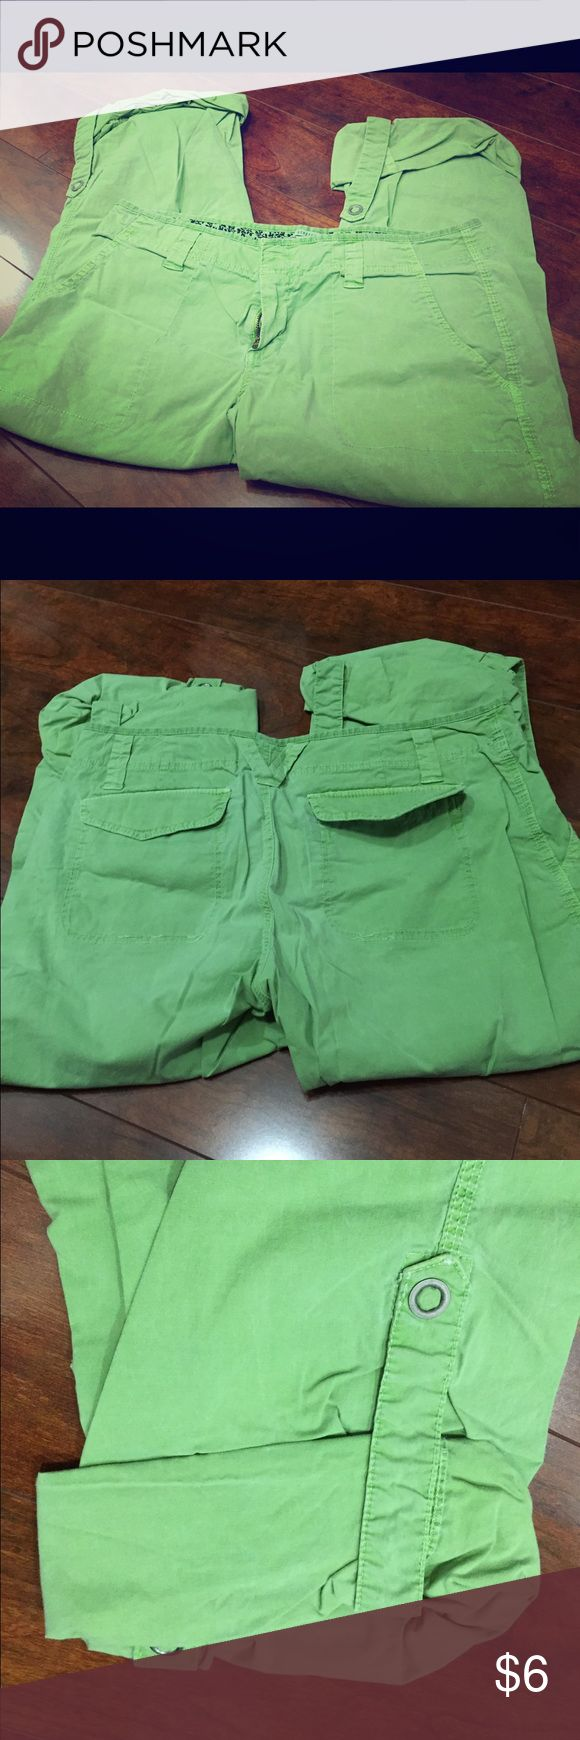 Old Navy Cargo Pants sz 10 Lime green old navy cargo pants size 10, stretch material. Low waist. Cute and comfy Old Navy Pants Capris